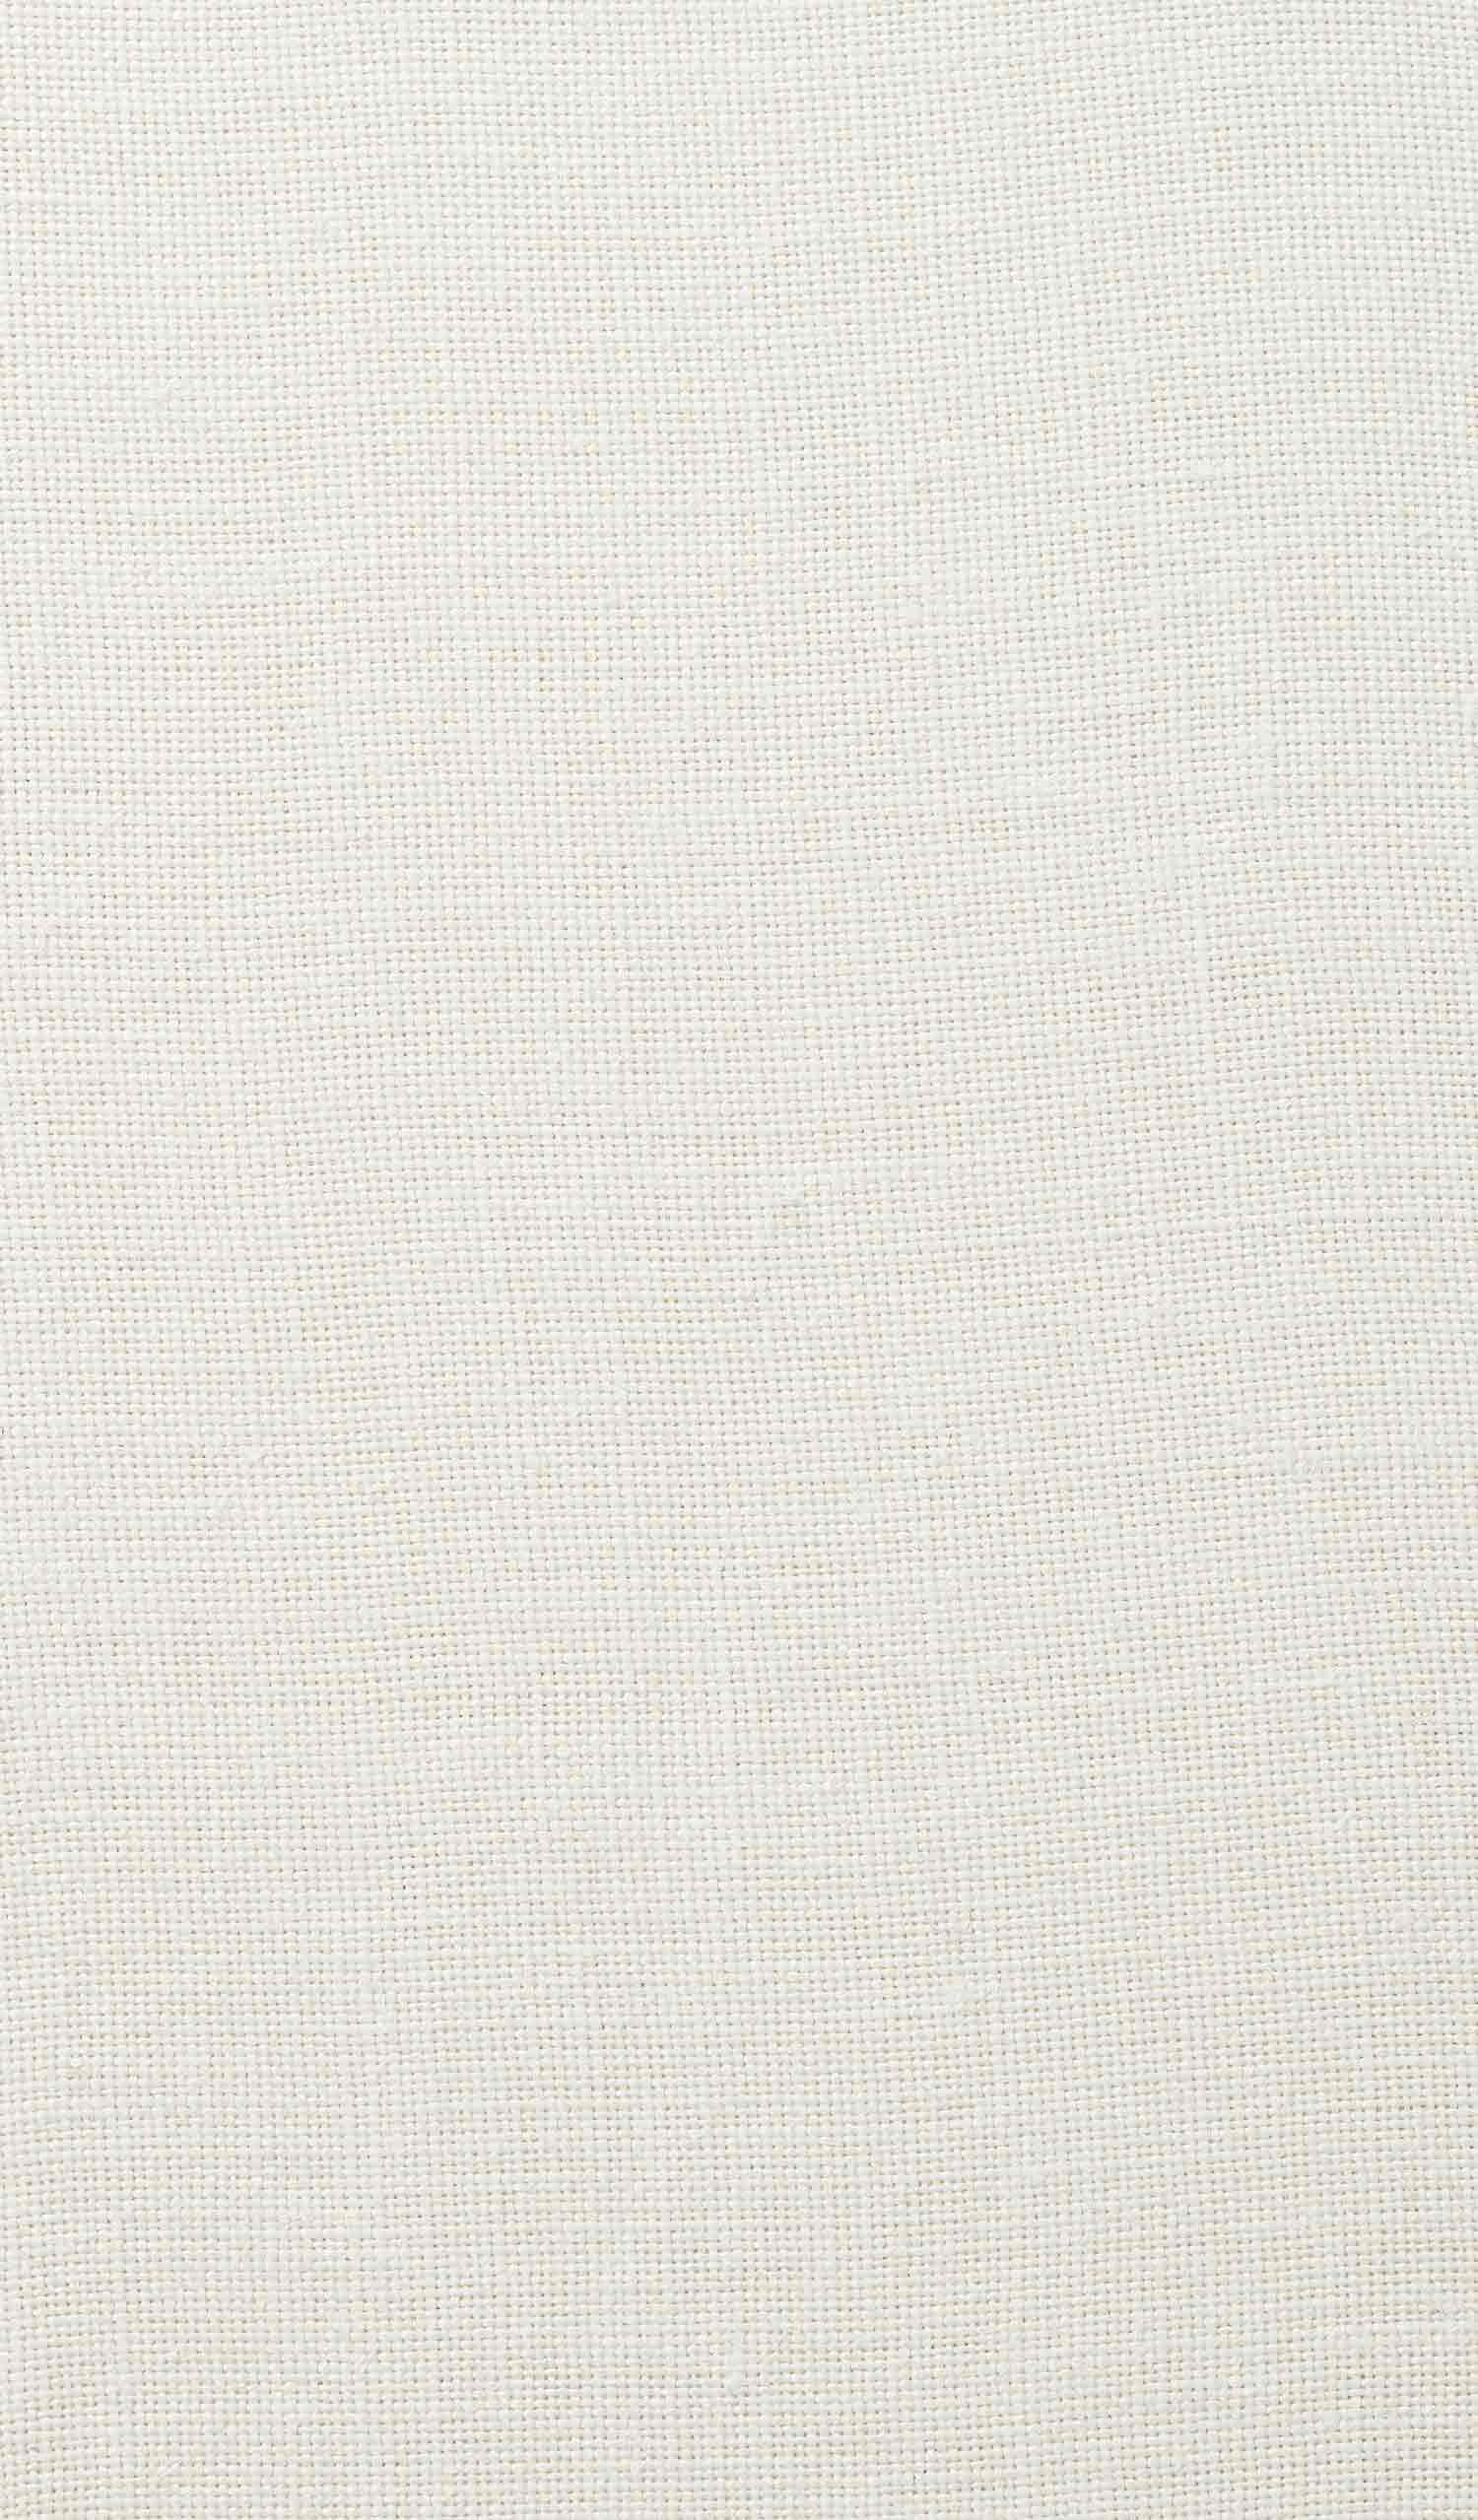 swatch of linen laundered casual optic white